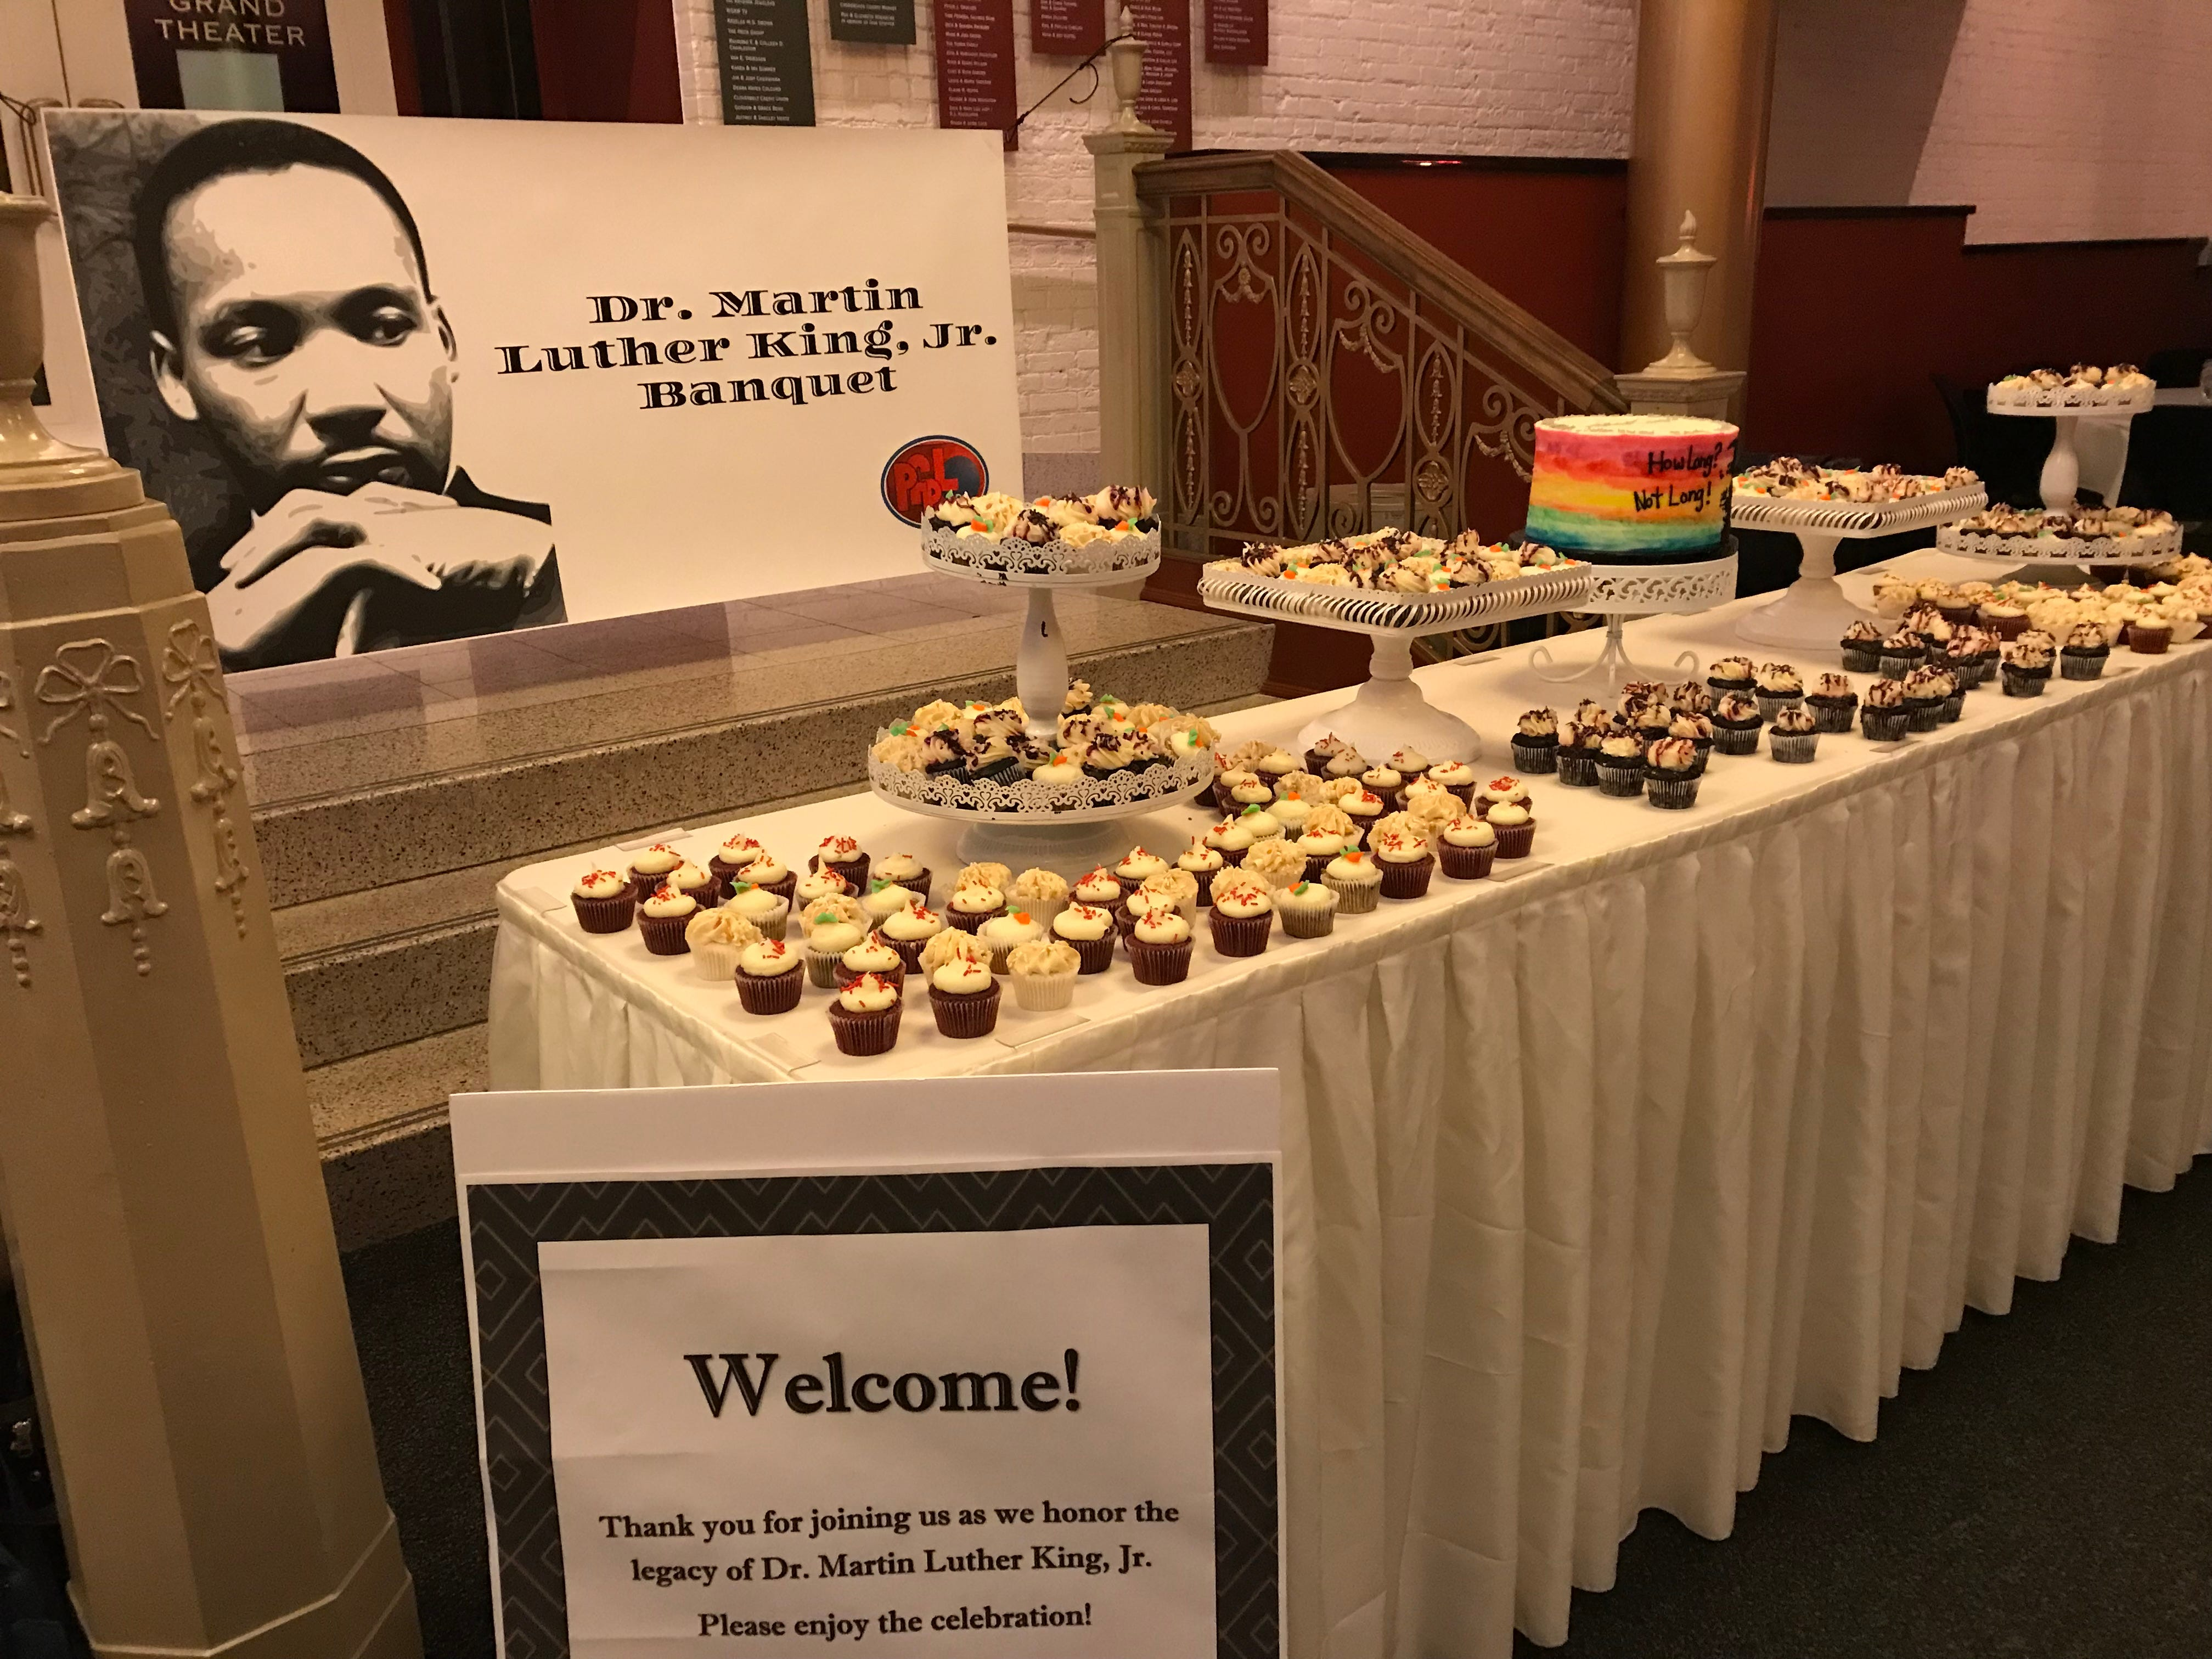 Wausau organizations came together Monday to celebrate Dr. Martin Luther King Jr.